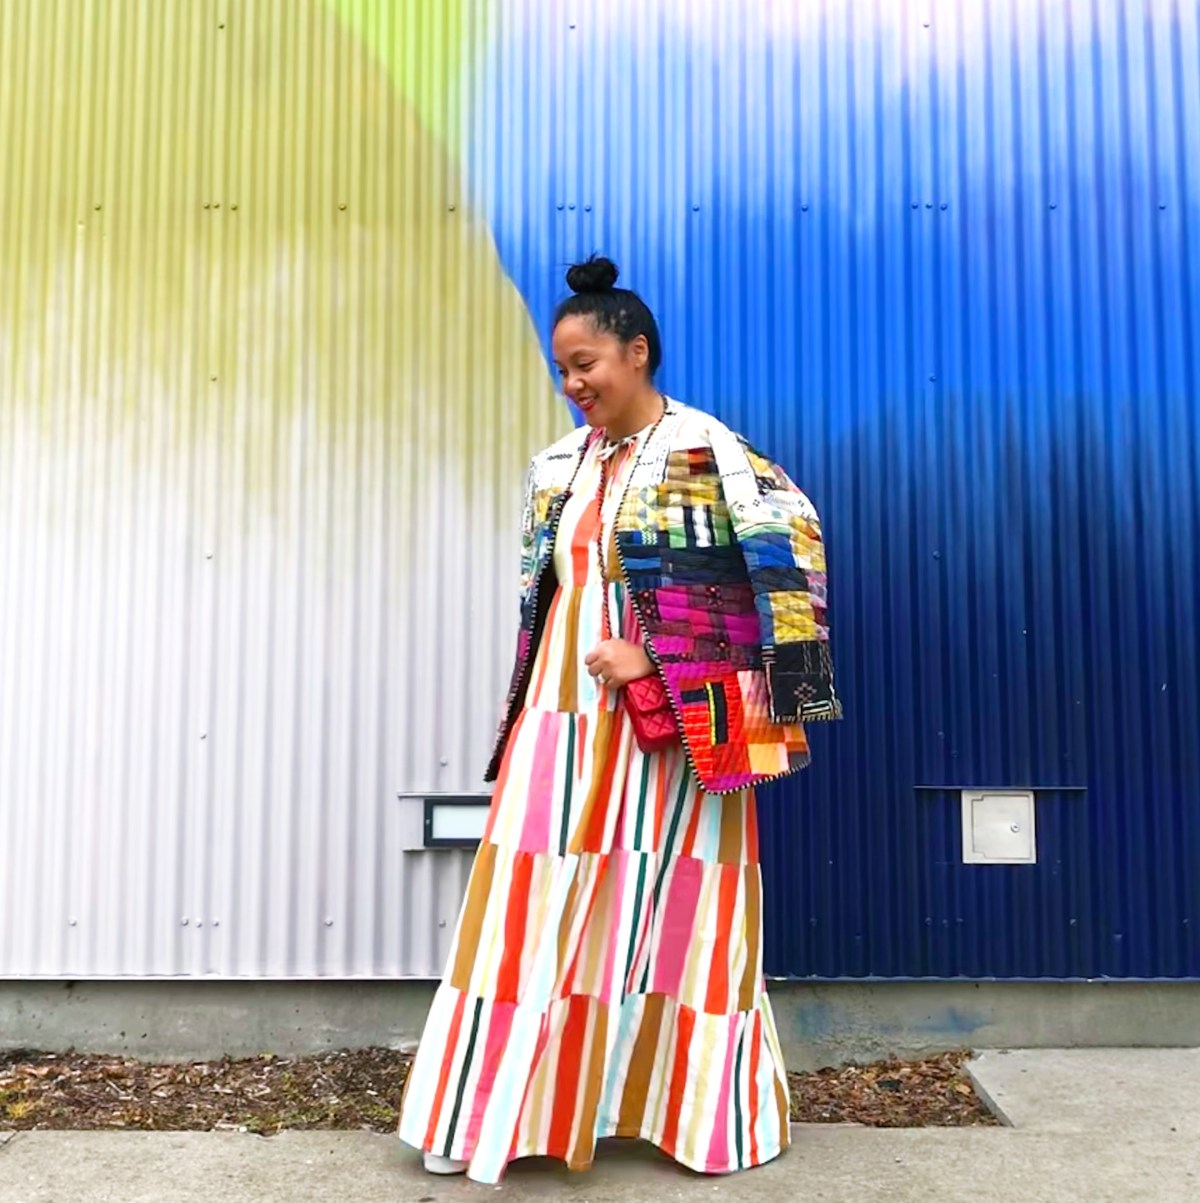 A person standing in front of a yellow and blue wall wearing a colourful quilted jacket made out of scraps with a long striped dress underneath.